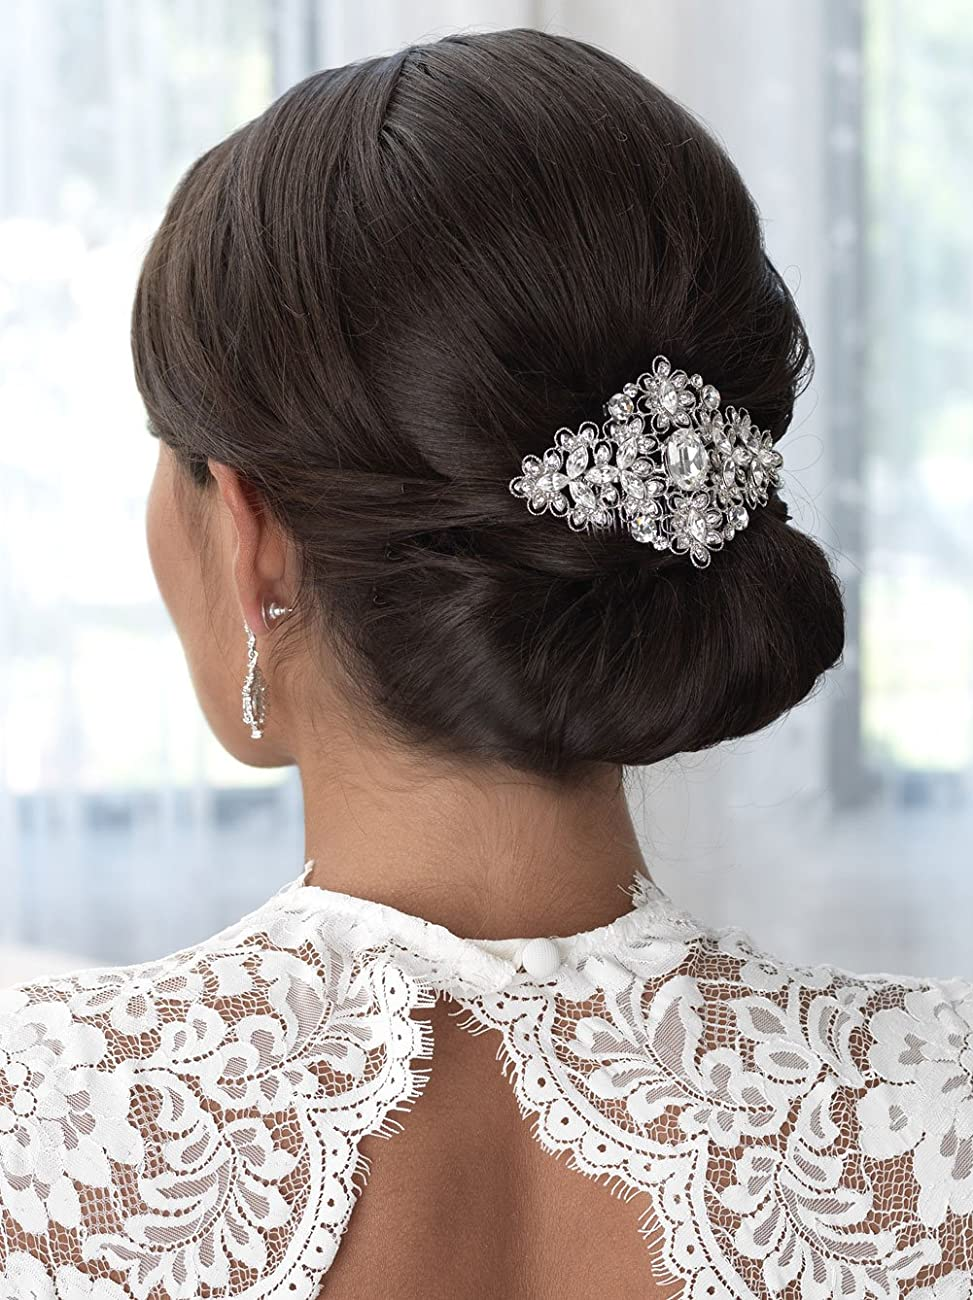 USABride Vintage Gold Tone Wedding Comb Filigree Bridal Hair Accessory 2241-G 2